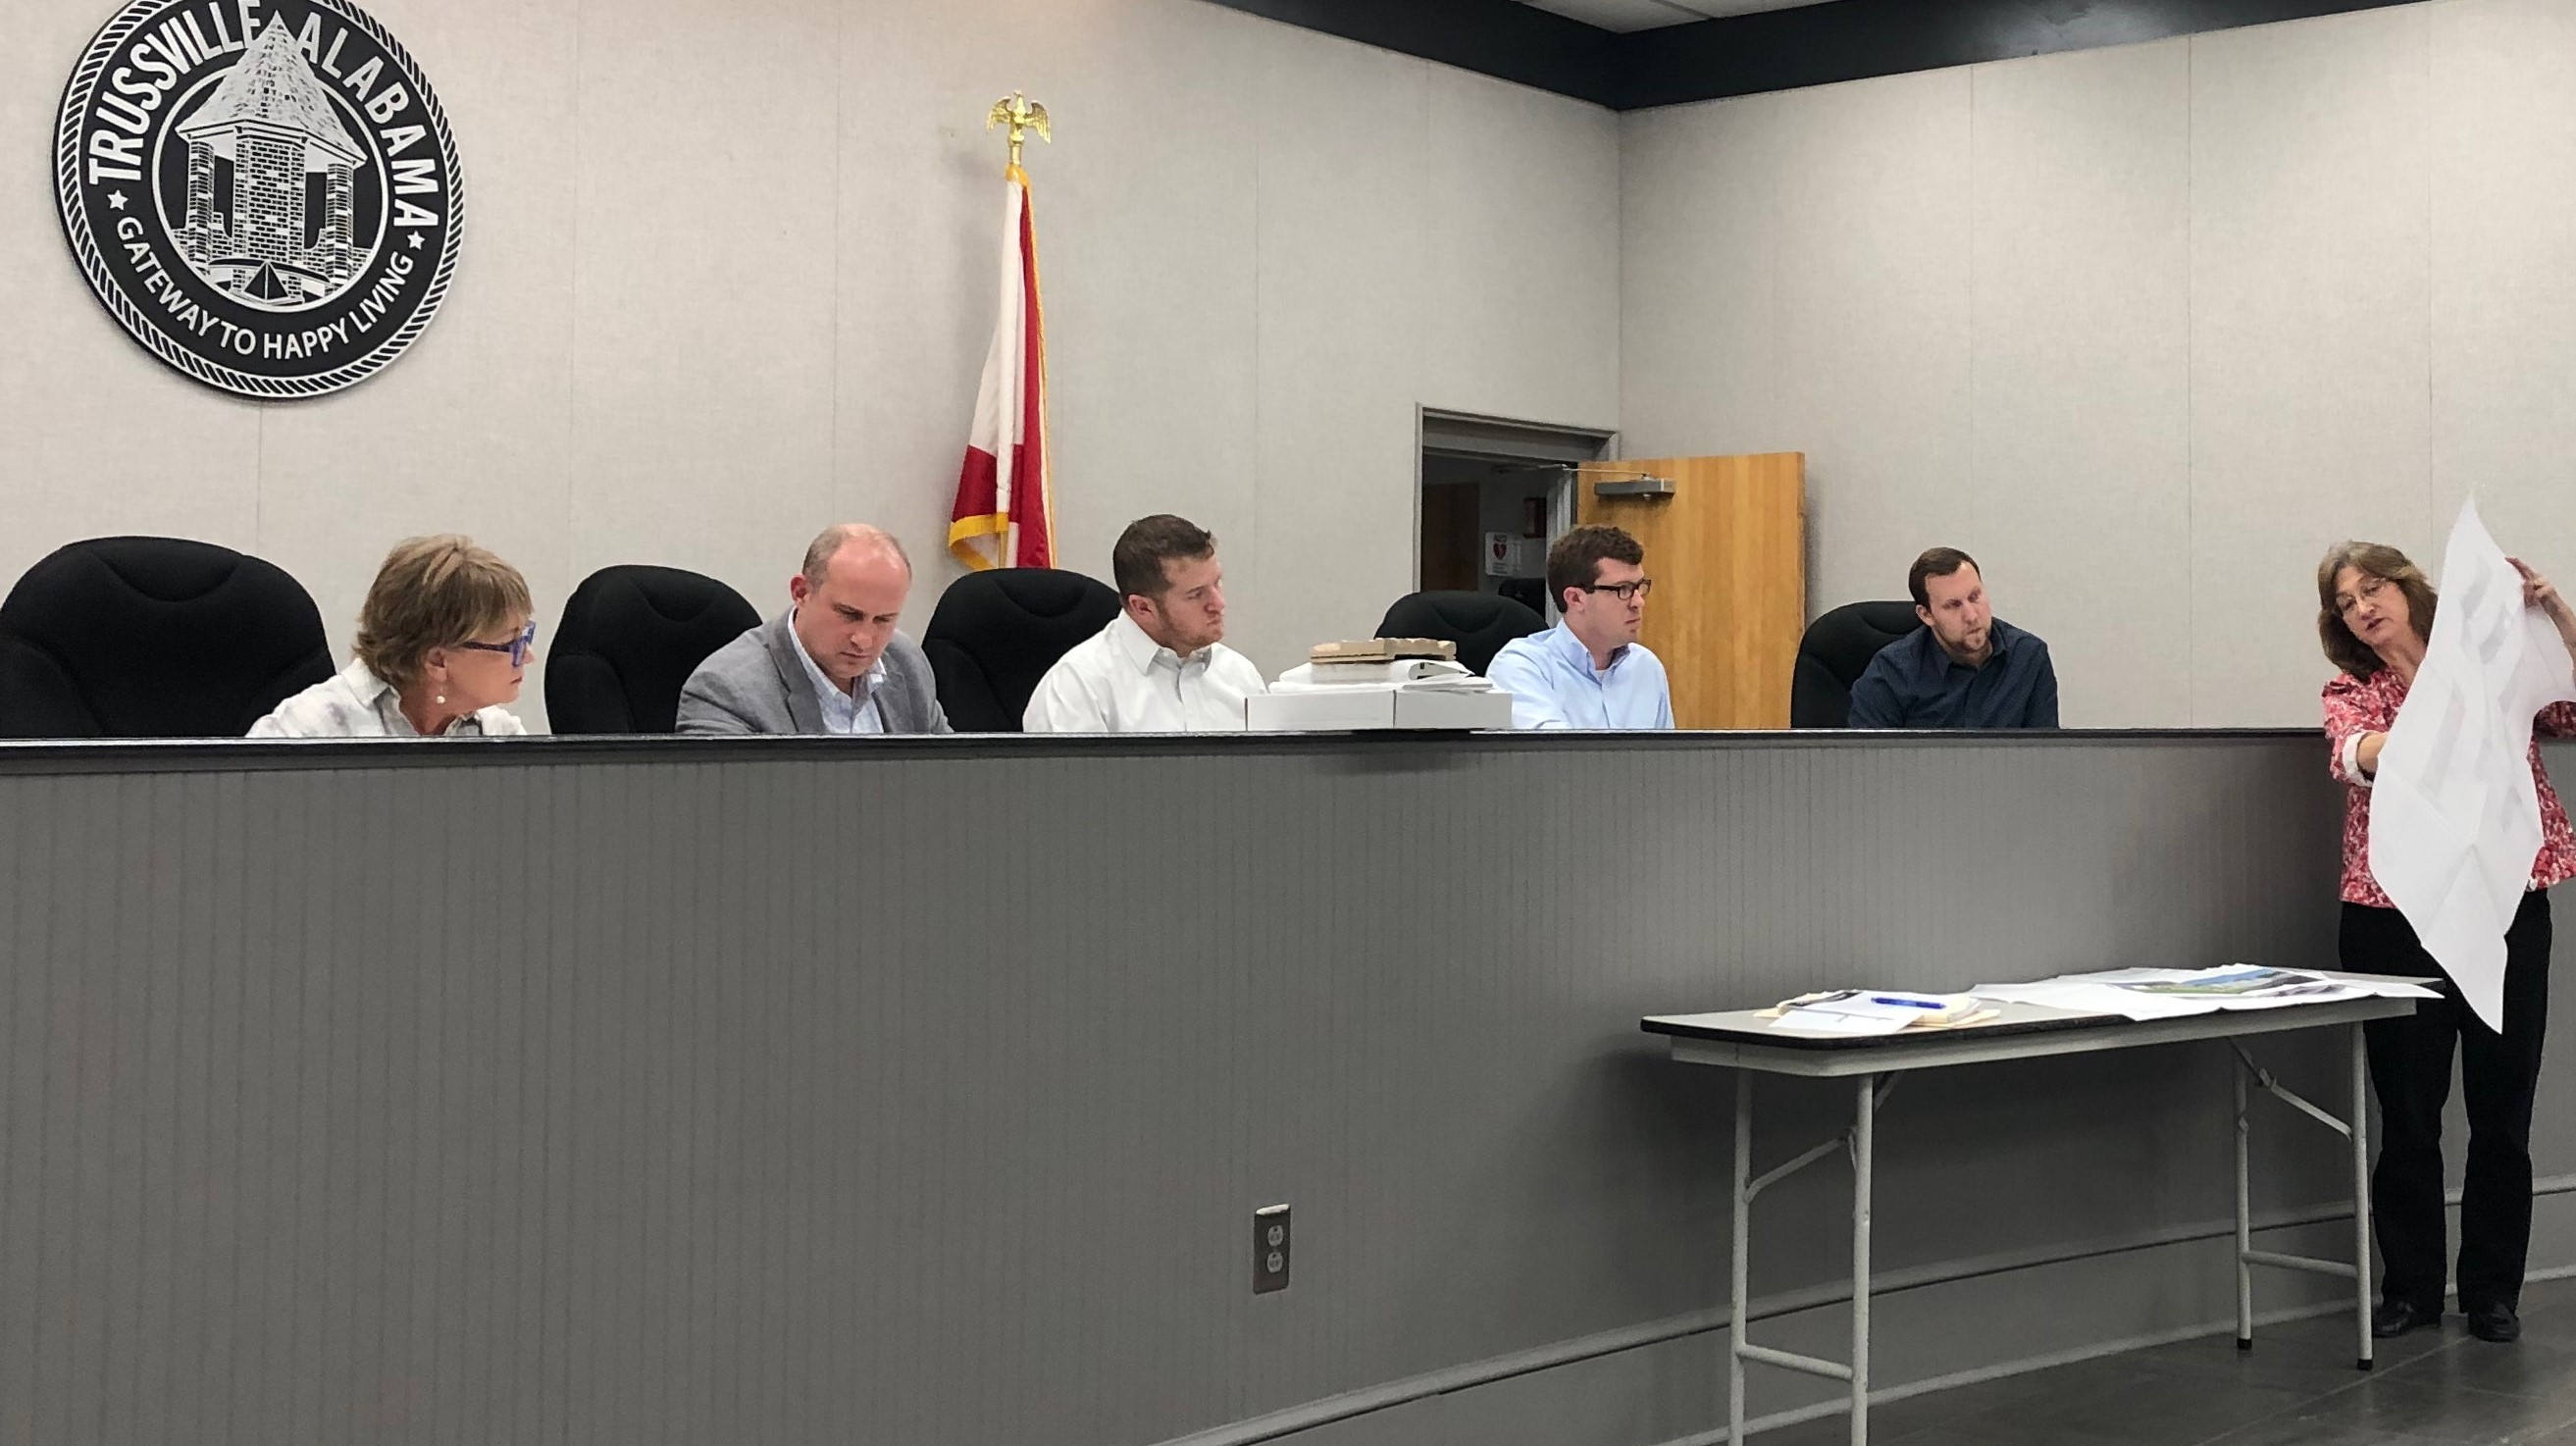 Plans for freestanding Dollar General in Trussville presented to DRC